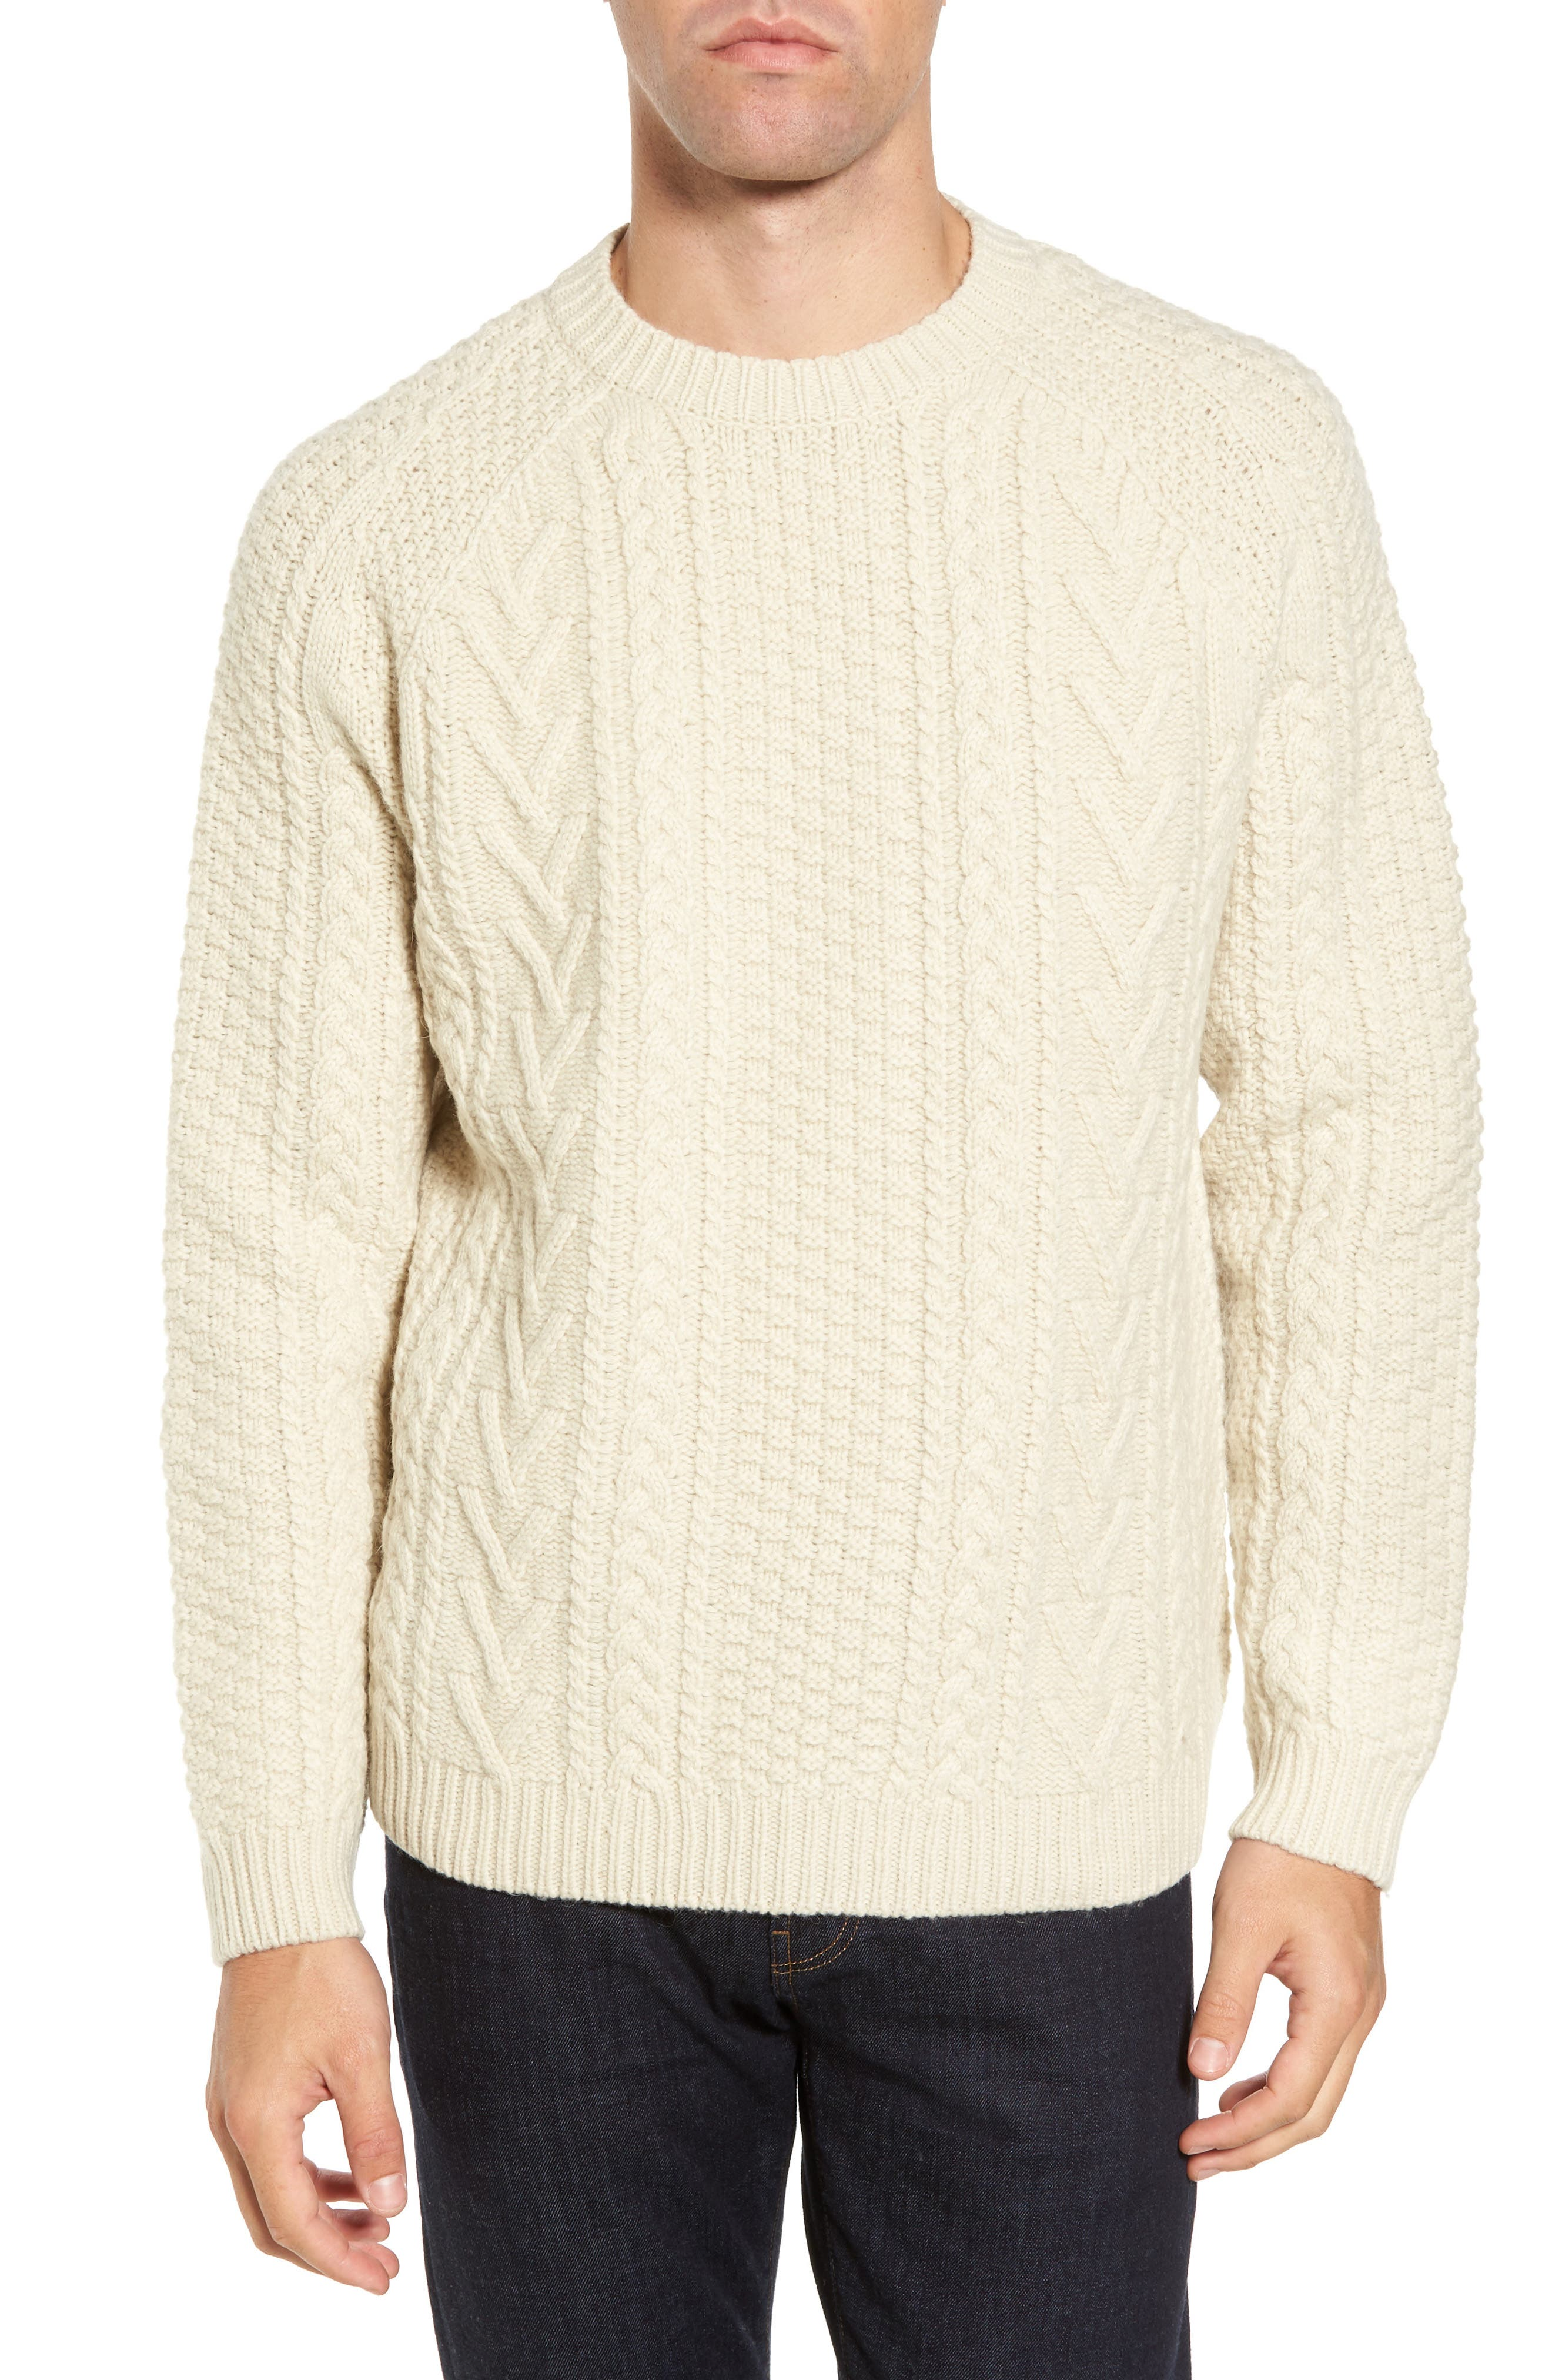 Fisherman Knit Wool Blend Sweater,                             Main thumbnail 1, color,                             OFF WHITE